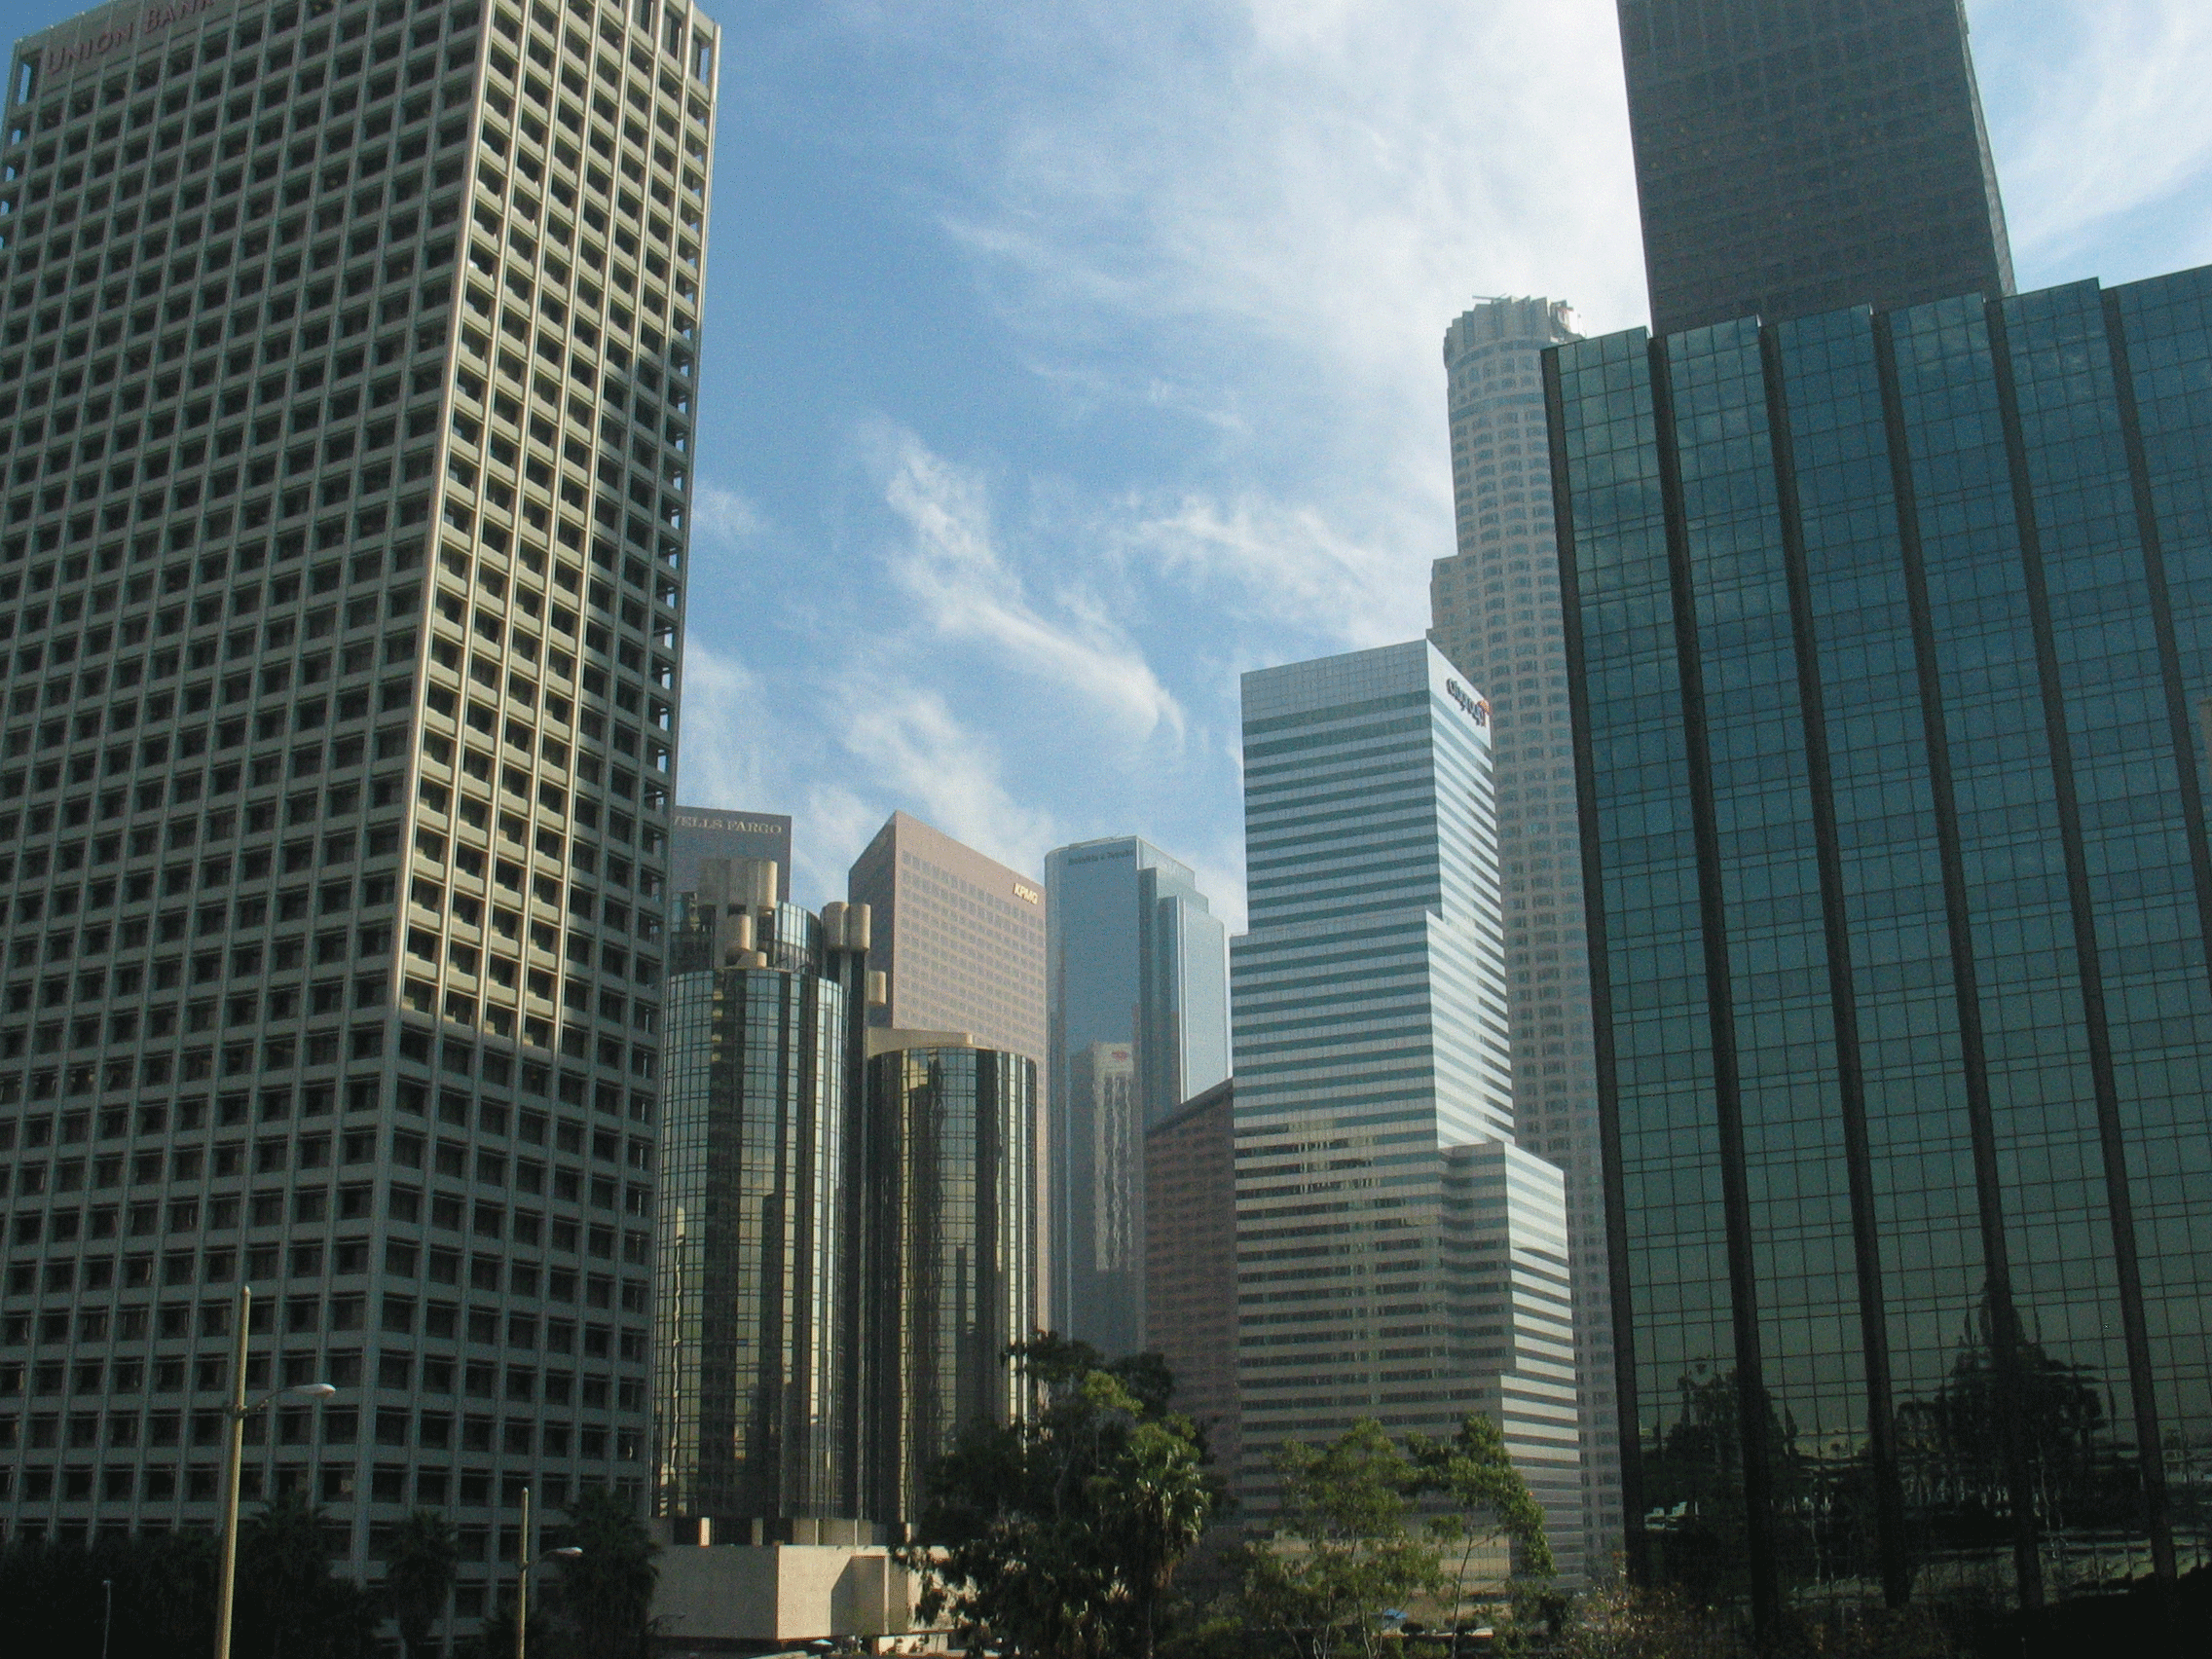 6.  Mirrored glass on skyscrapers acts very similarly within the context of landscape. In this situation, the mirrored skin of the skyscraper reflects the sky and other buildings. This suggests that the building itself produces copies of other buildings like a spectrum of landscape eidolon.